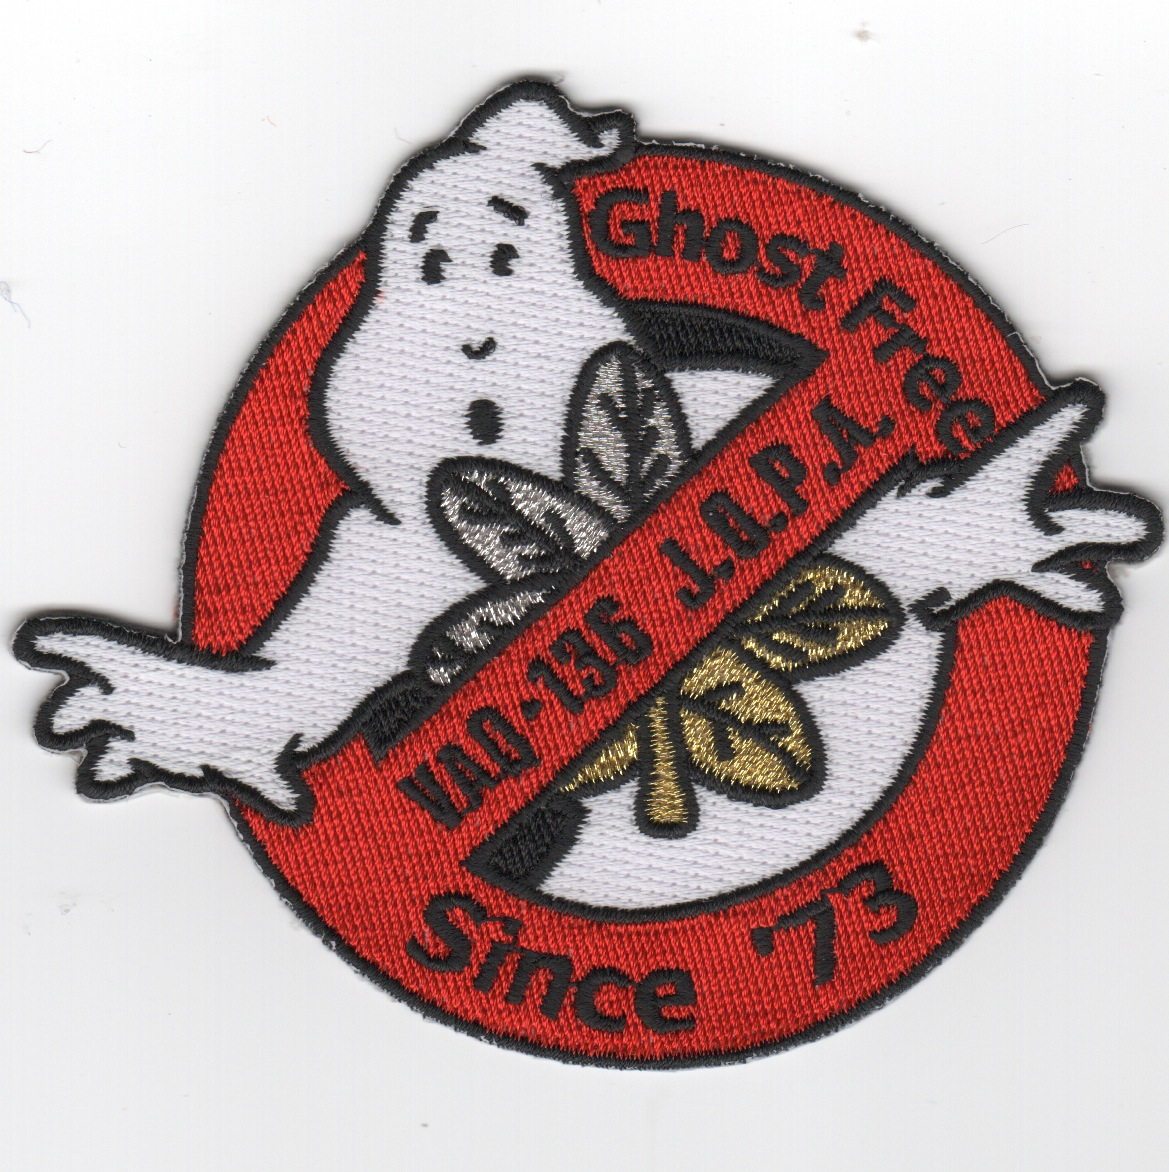 VAQ-136 'JOPA GHOST' Patch